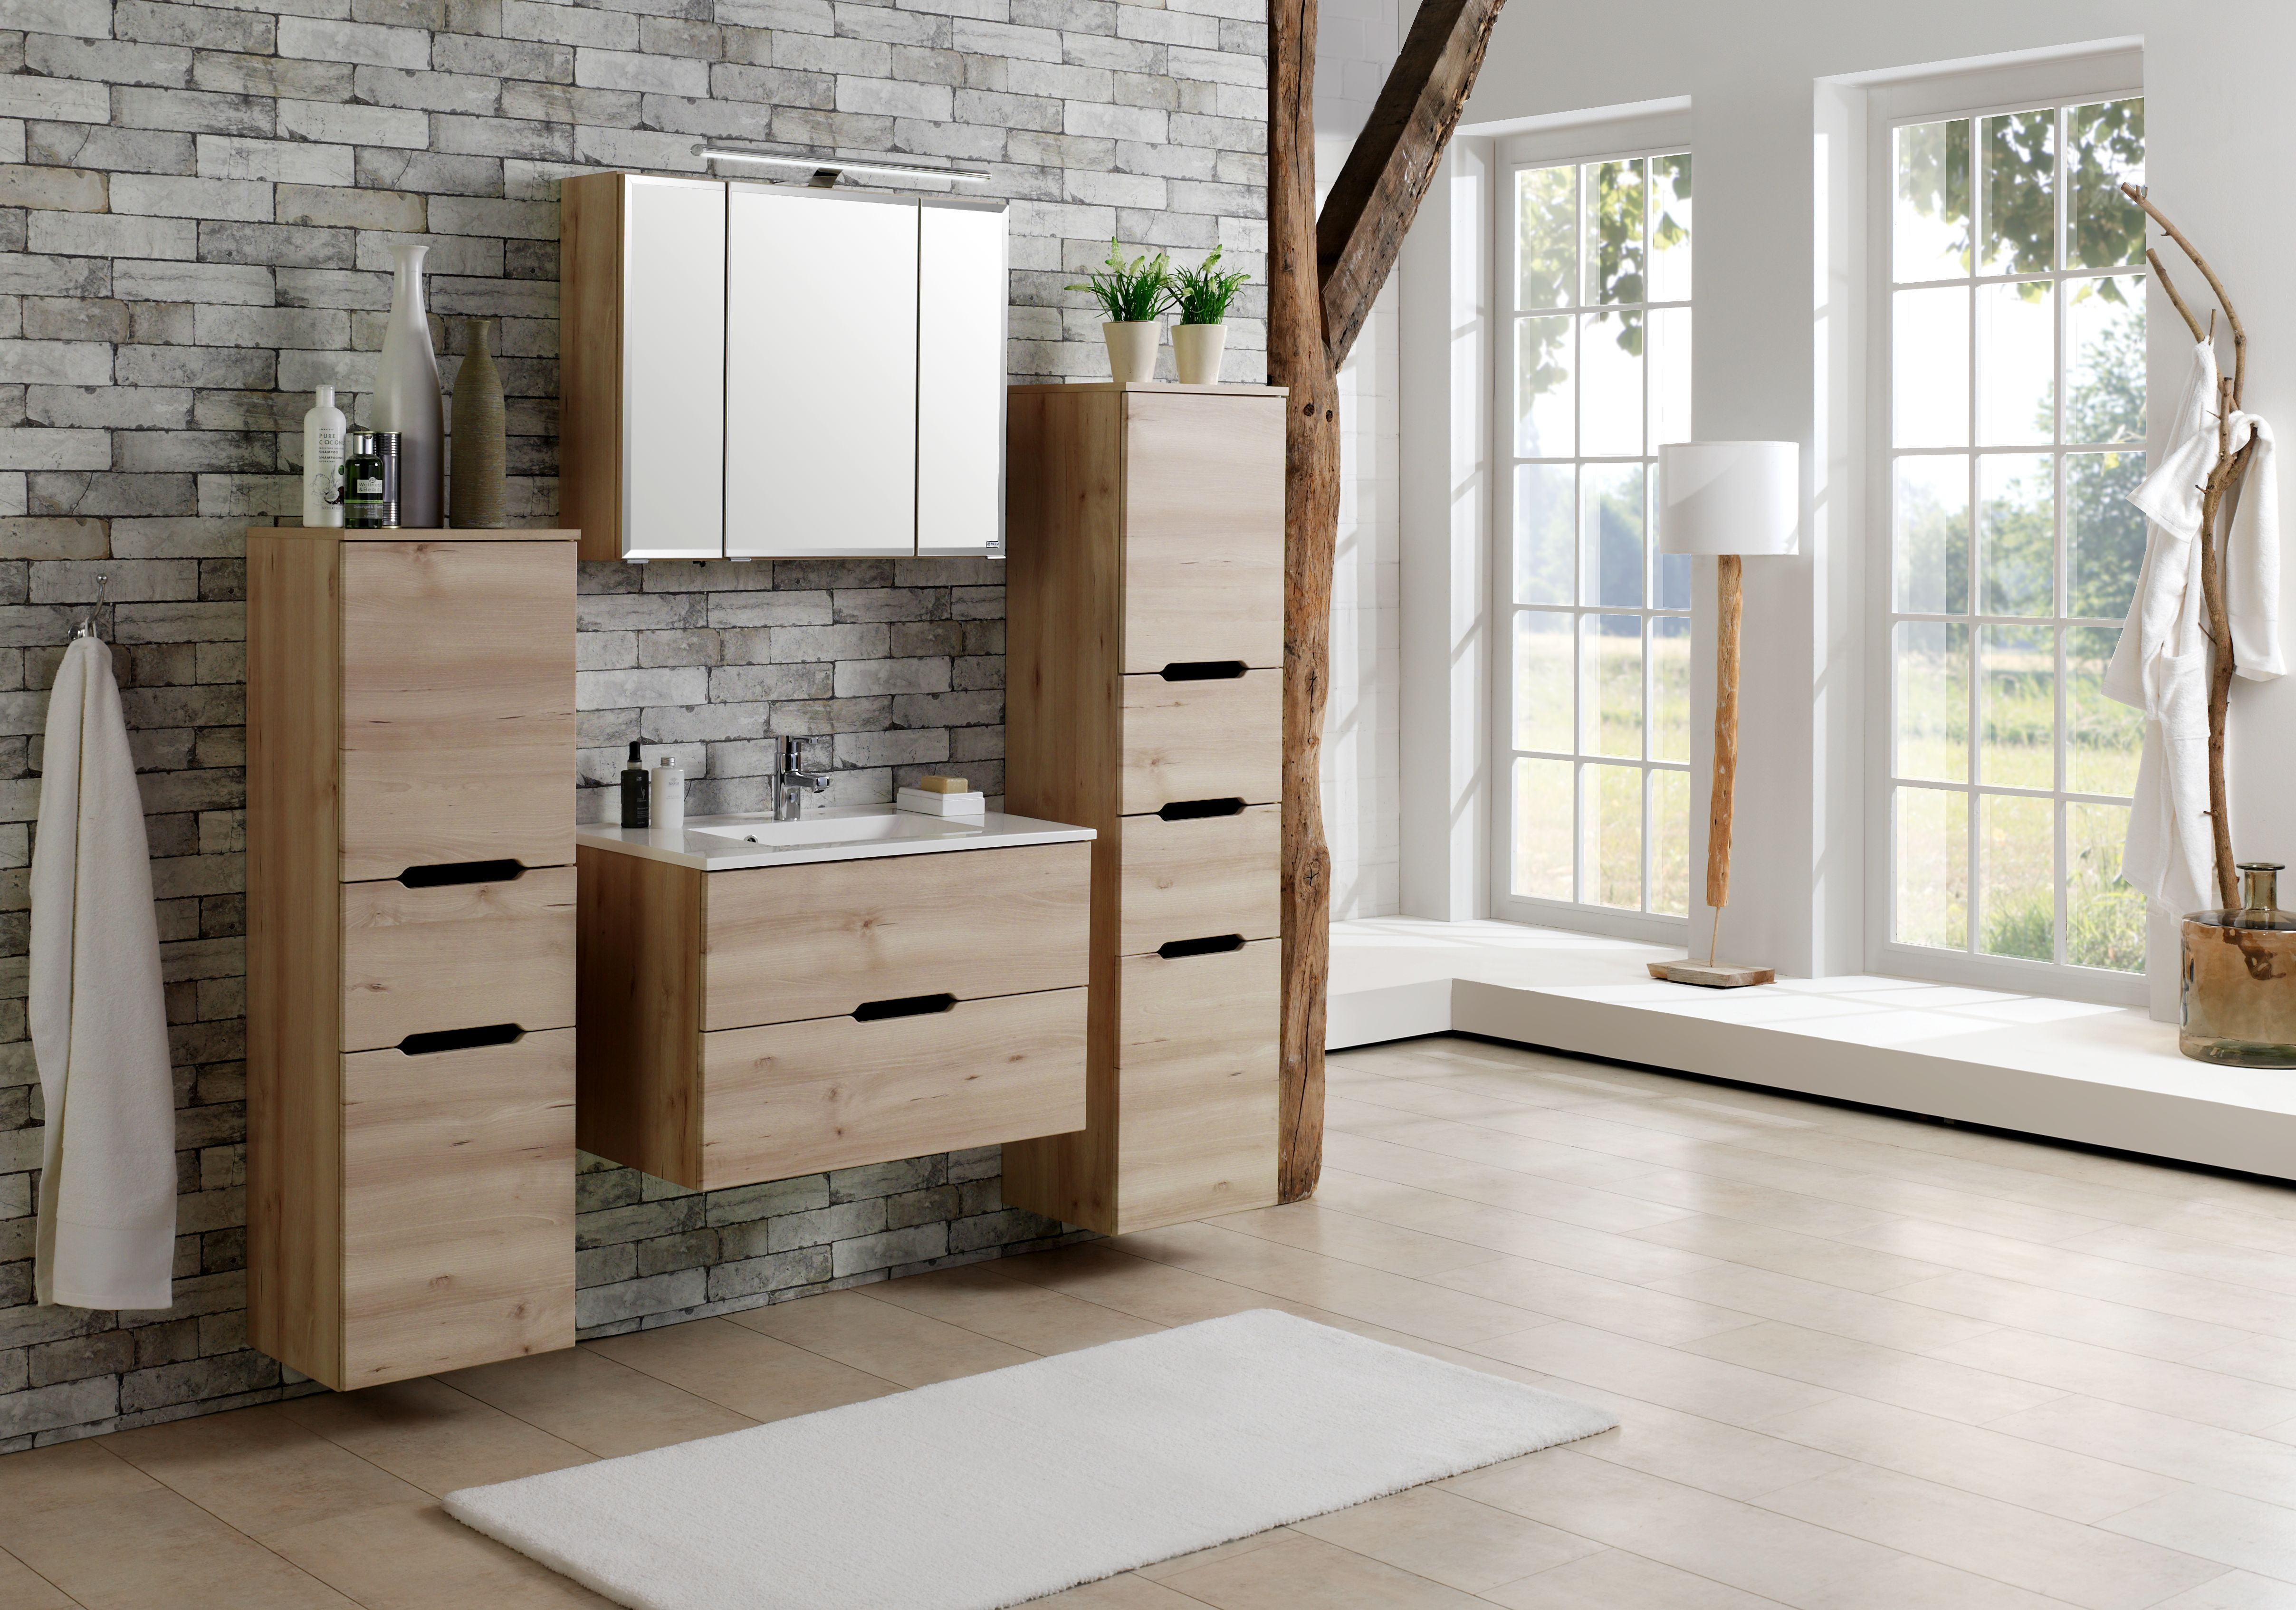 spiegelschrank 60 inkl led beleuchtung belluno von held m bel buche iconic. Black Bedroom Furniture Sets. Home Design Ideas